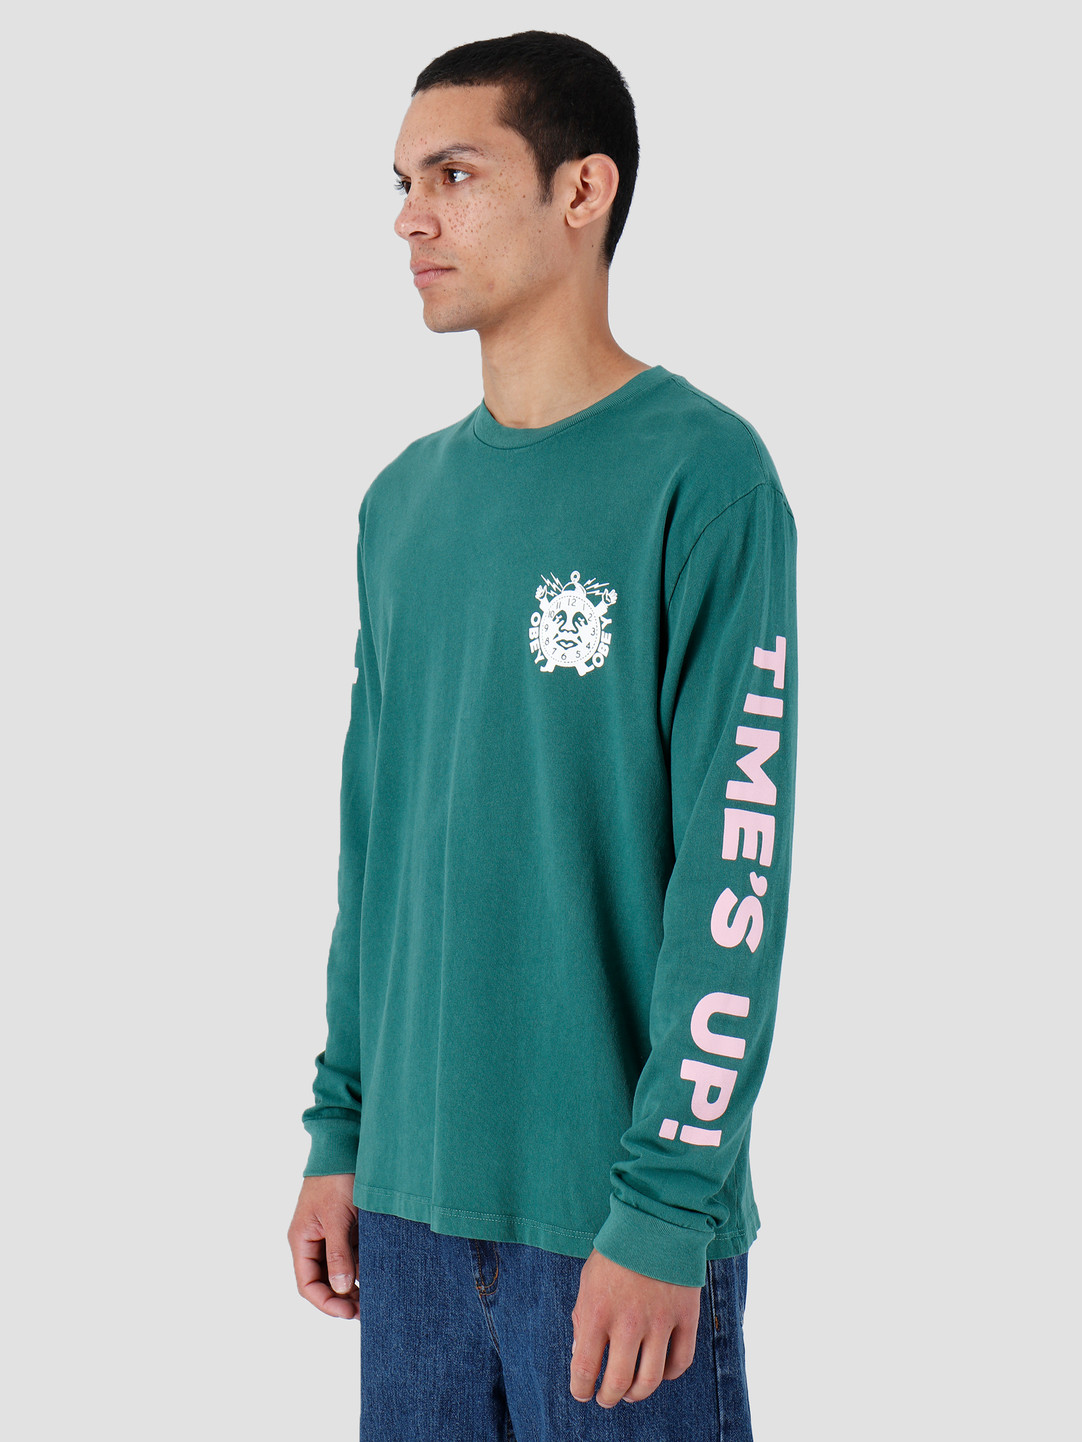 Obey Obey Basic Pigment Longsleeve Shirt Dusty Ivy Green 166731974-IVY